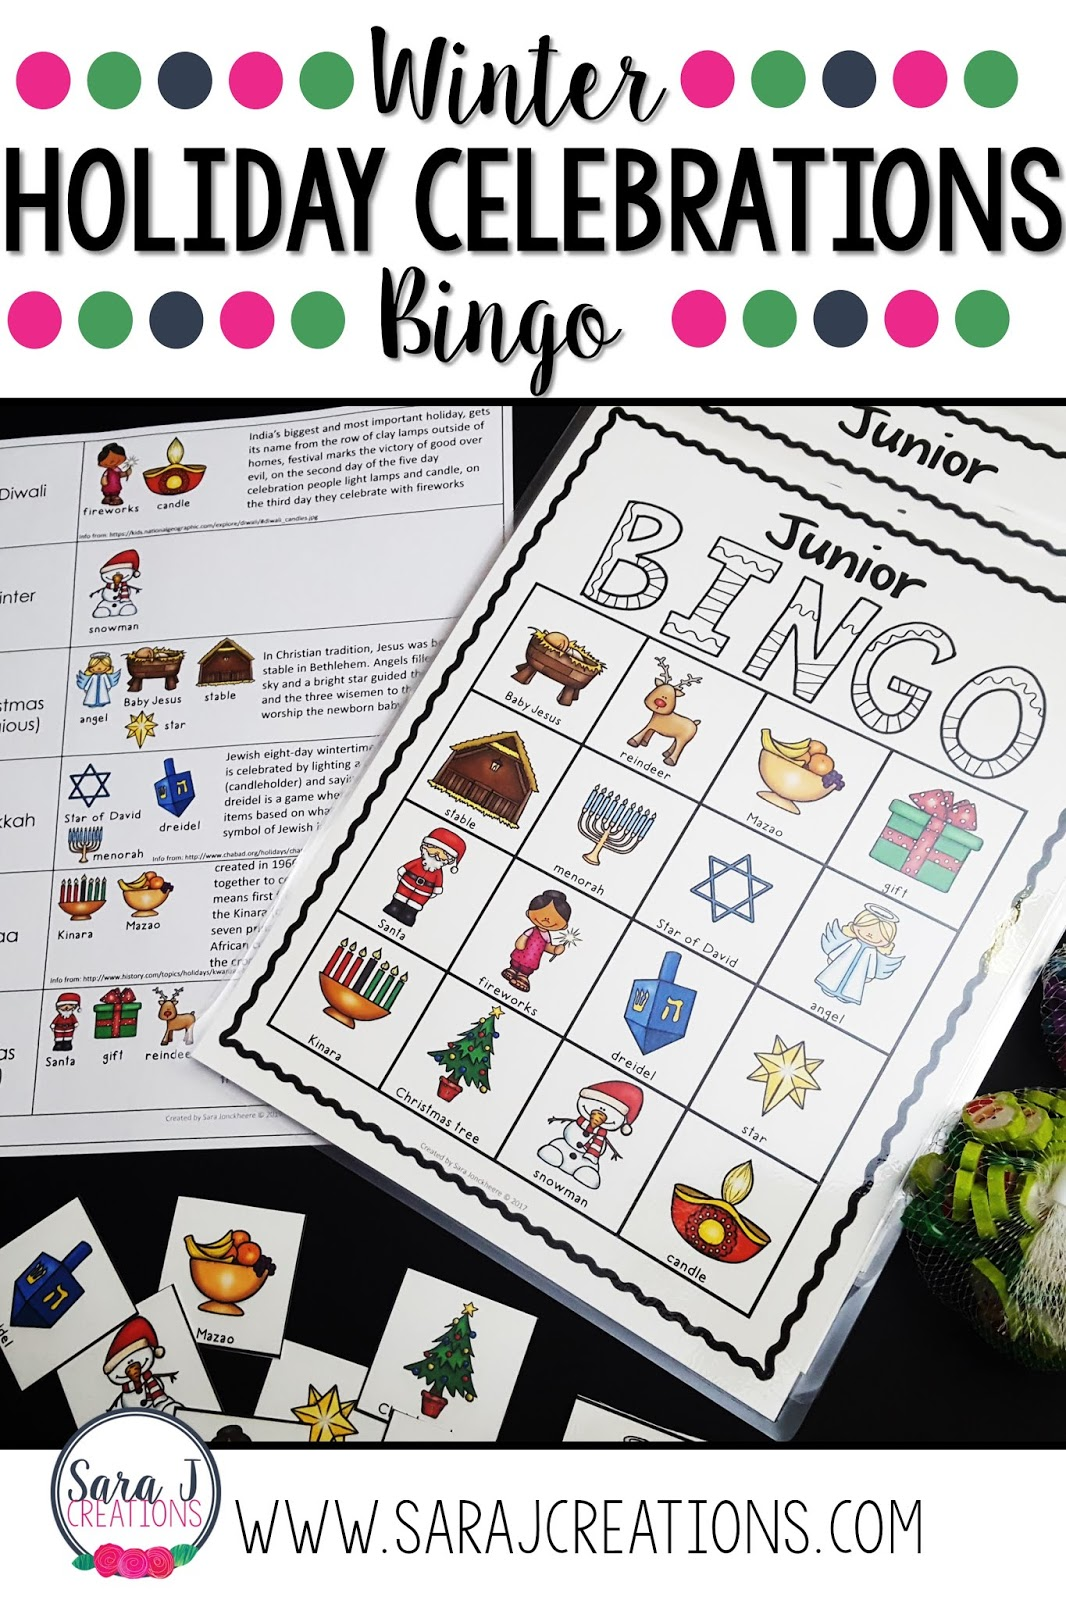 Holiday Celebrations Bingo includes pictures with words for winter holidays including Christmas, Kwanzaa, Hanukkah, Diwali and winter.A class set of games boards is included in color and black and white. Each board is different which makes this perfect to print and play! Perfect for your classroom holiday party!